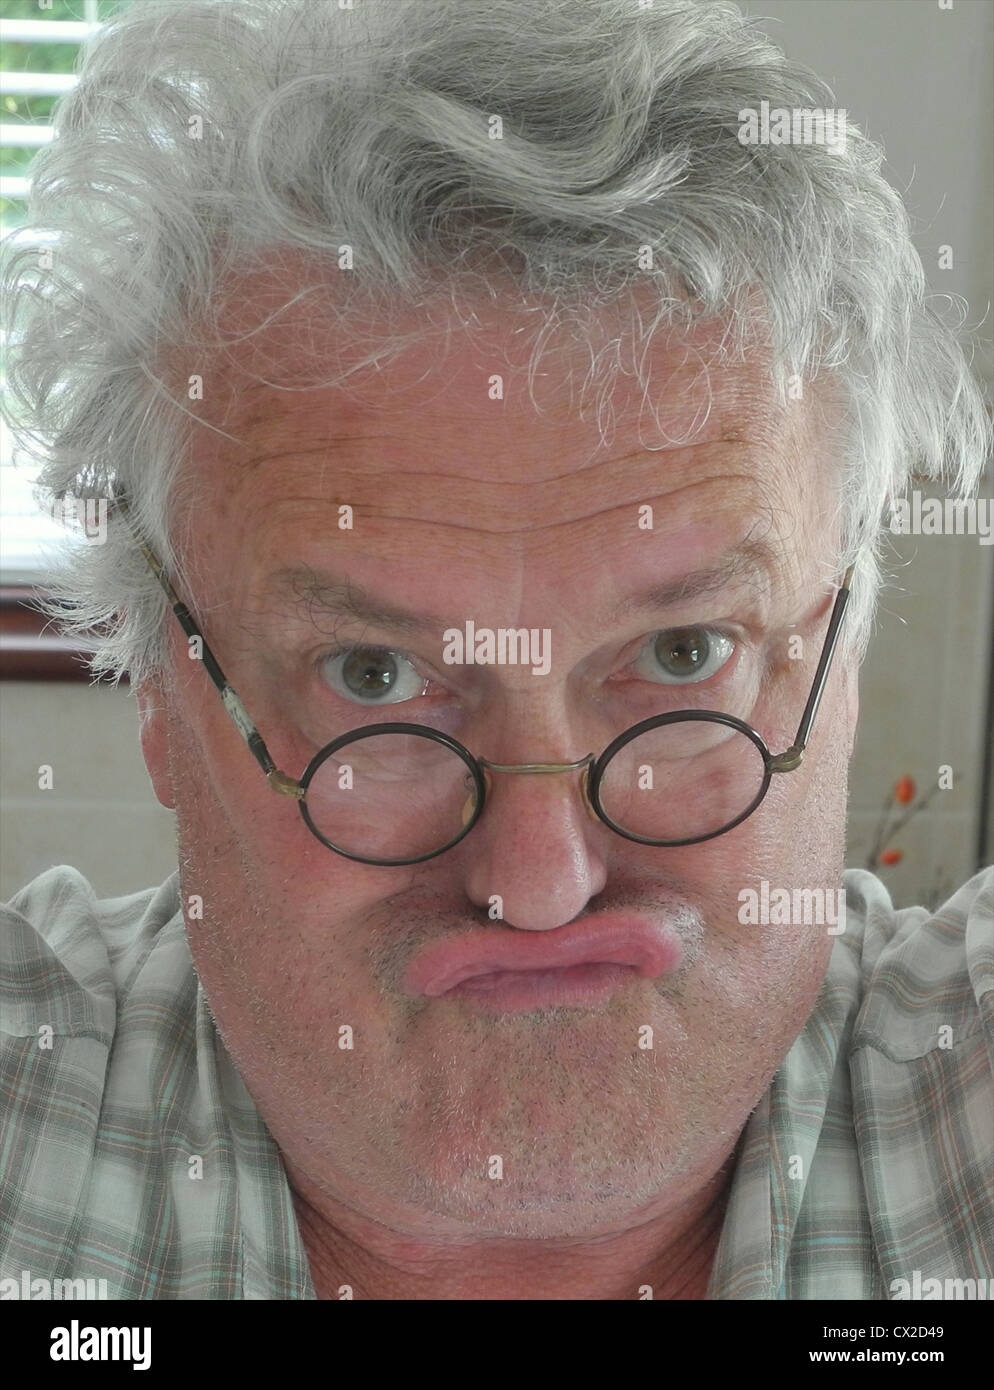 Astonished angry grumpy shocked old man uglyFULLY MODEL RELEASED FOR ANY USE - Stock Image